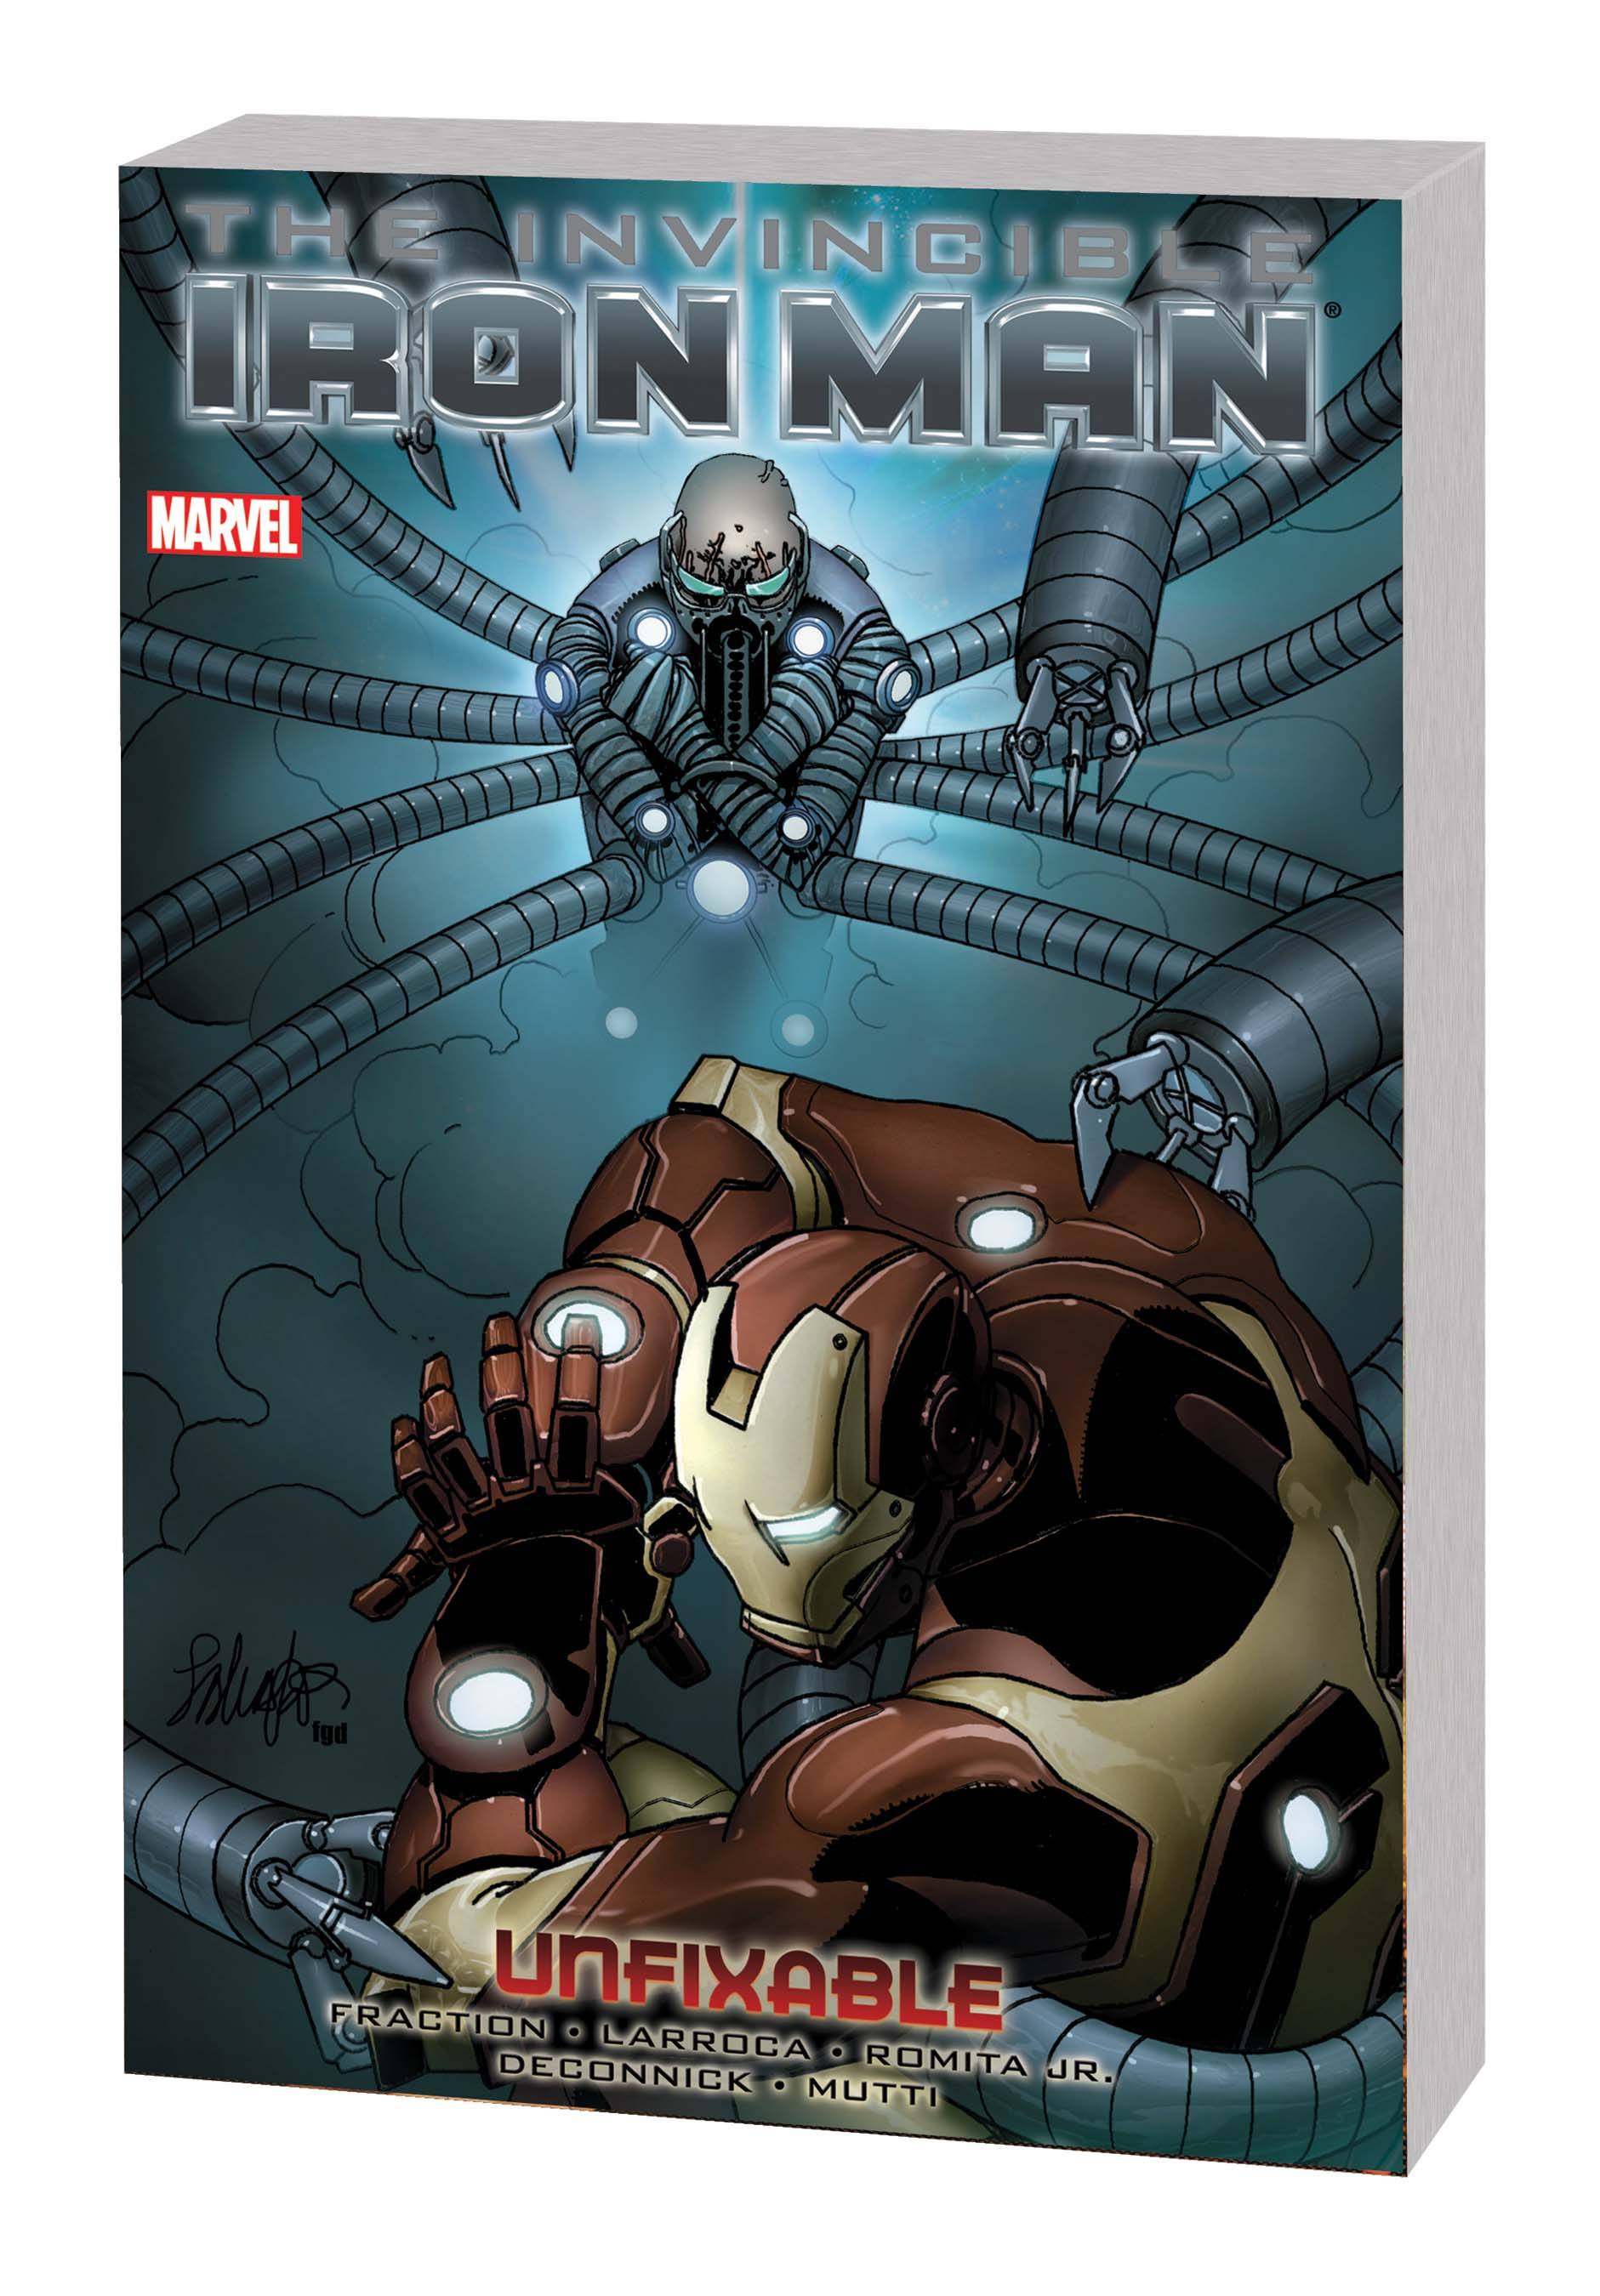 INVINCIBLE IRON MAN VOL. 8: UNFIXABLE TPB (Trade Paperback)